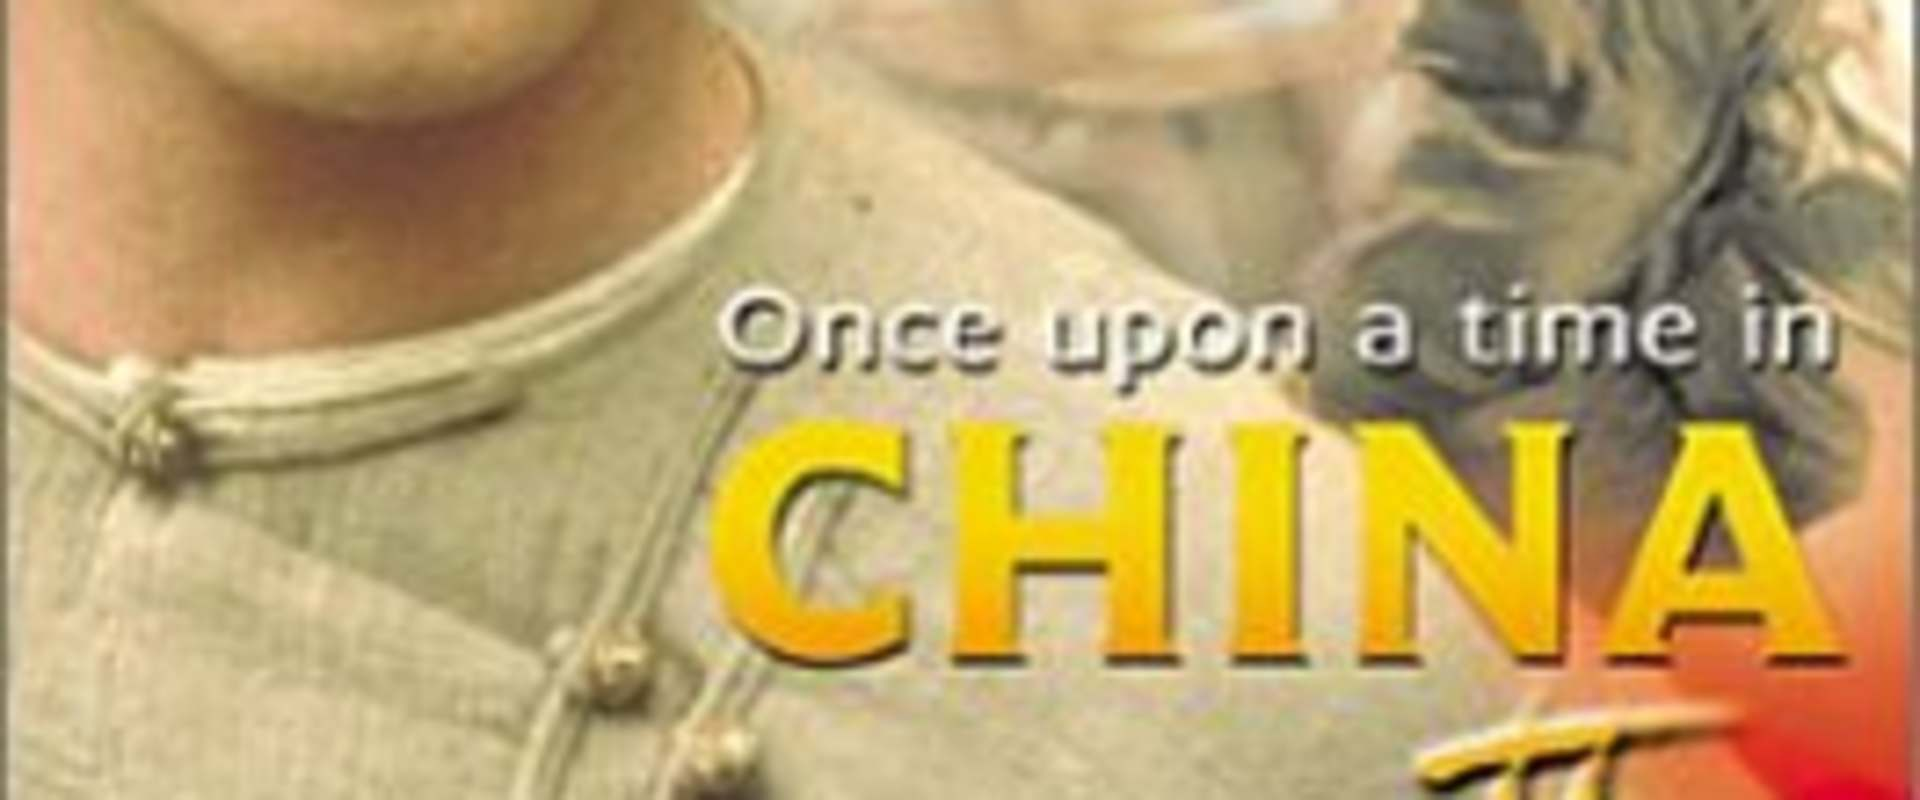 Once Upon a Time in China II background 2